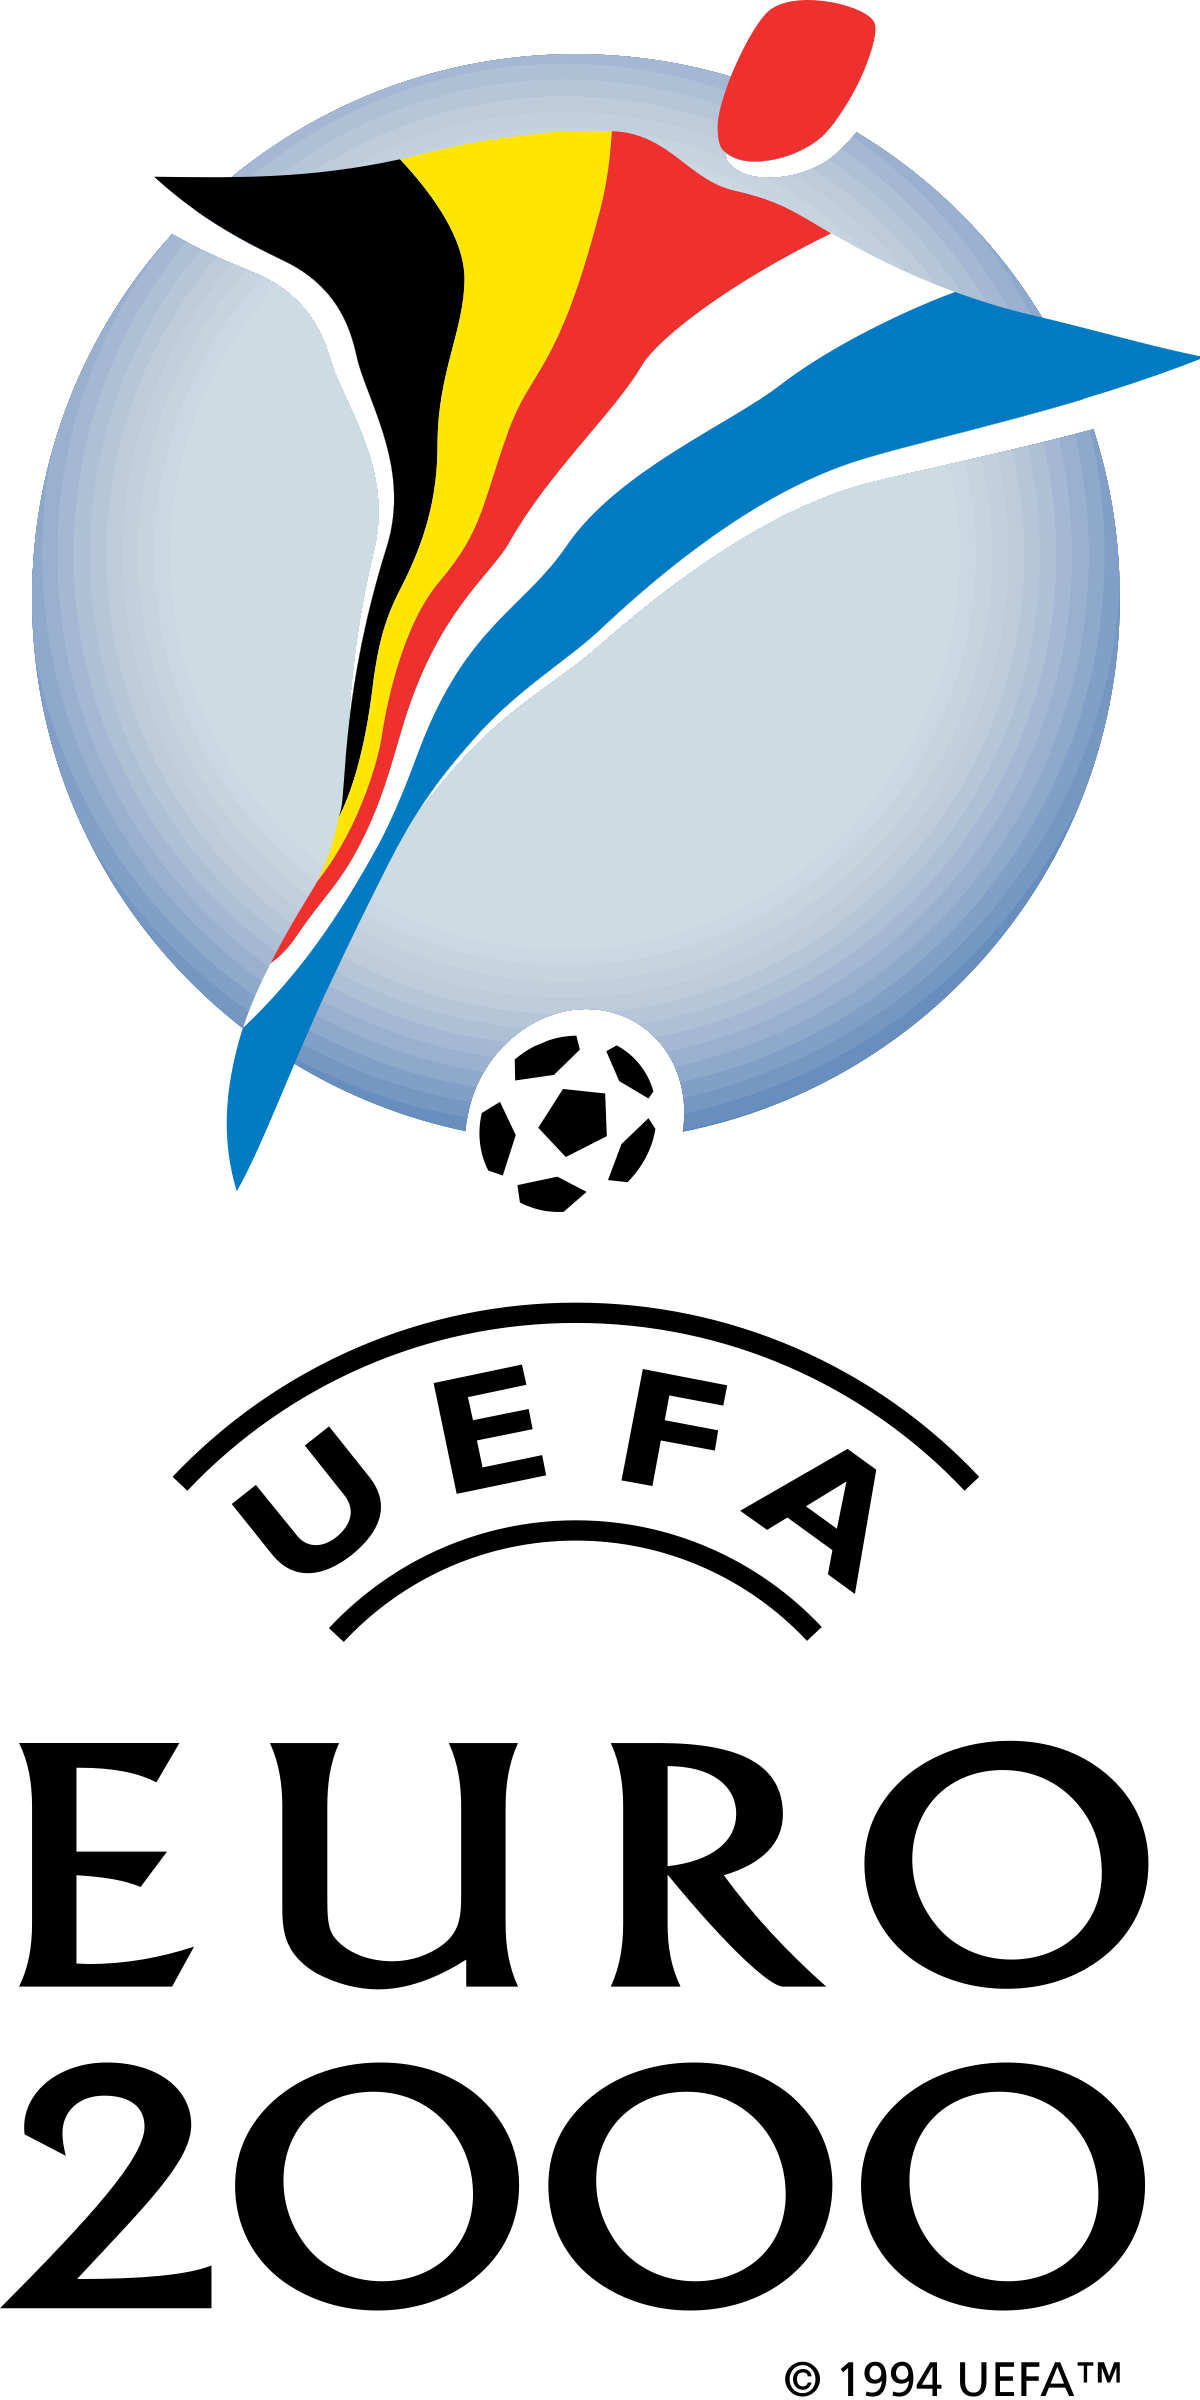 Europe clipart french building. Uefa euro wikipedia